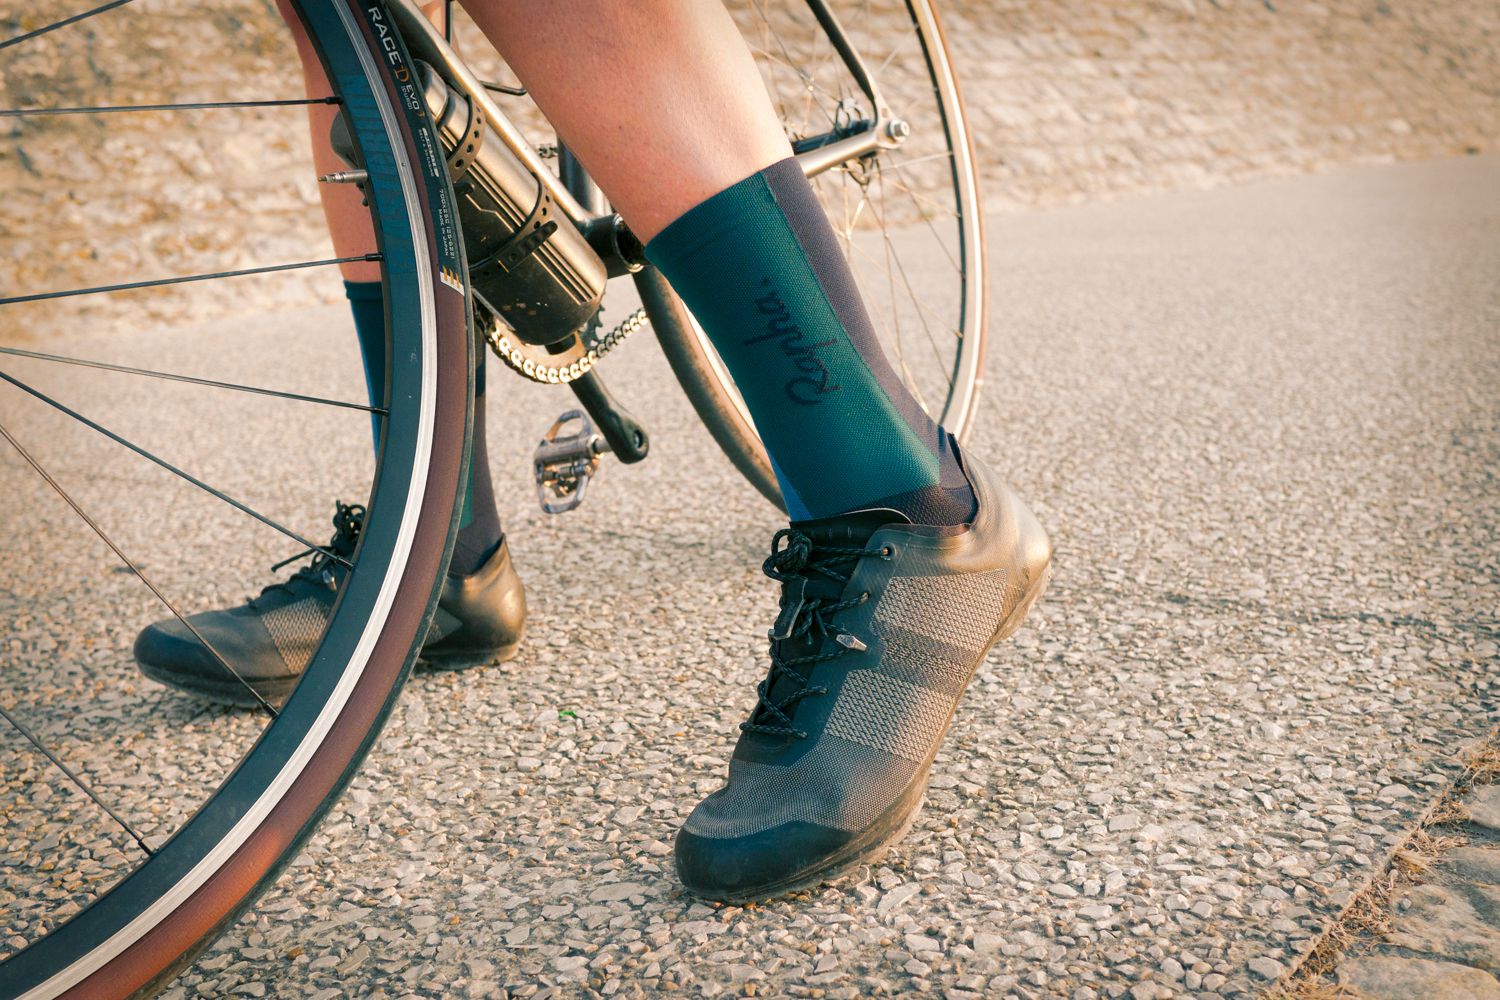 Rapha + Outdoor Voices women cycling apparel socks